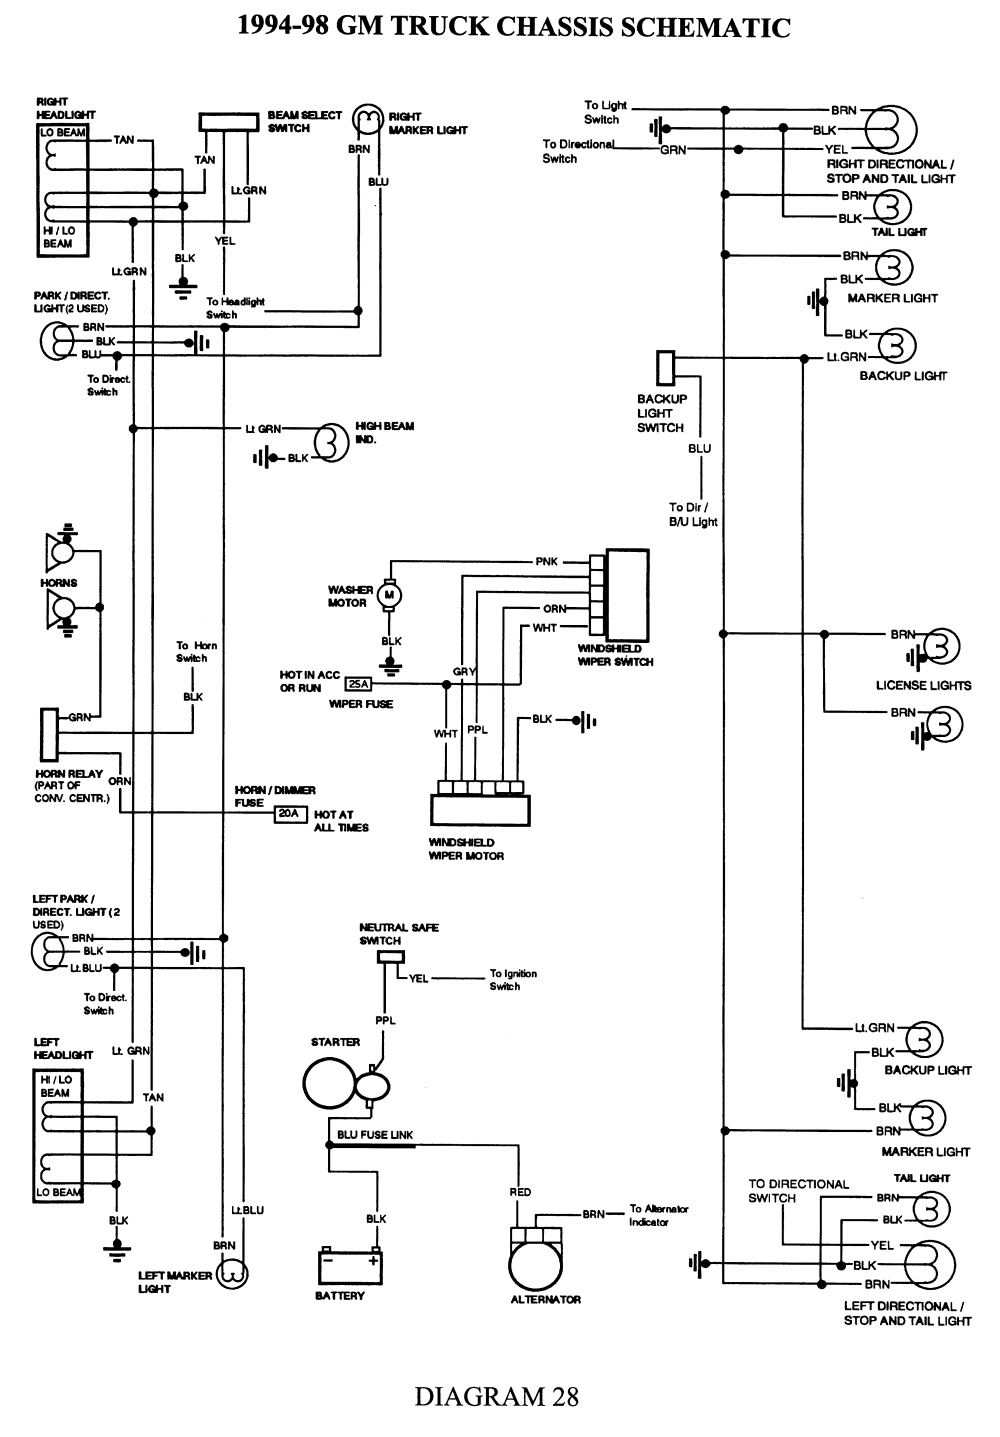 gm light wiring diagram wiring diagram progresifgm light wiring wiring data  diagram painless wiring diagram gm